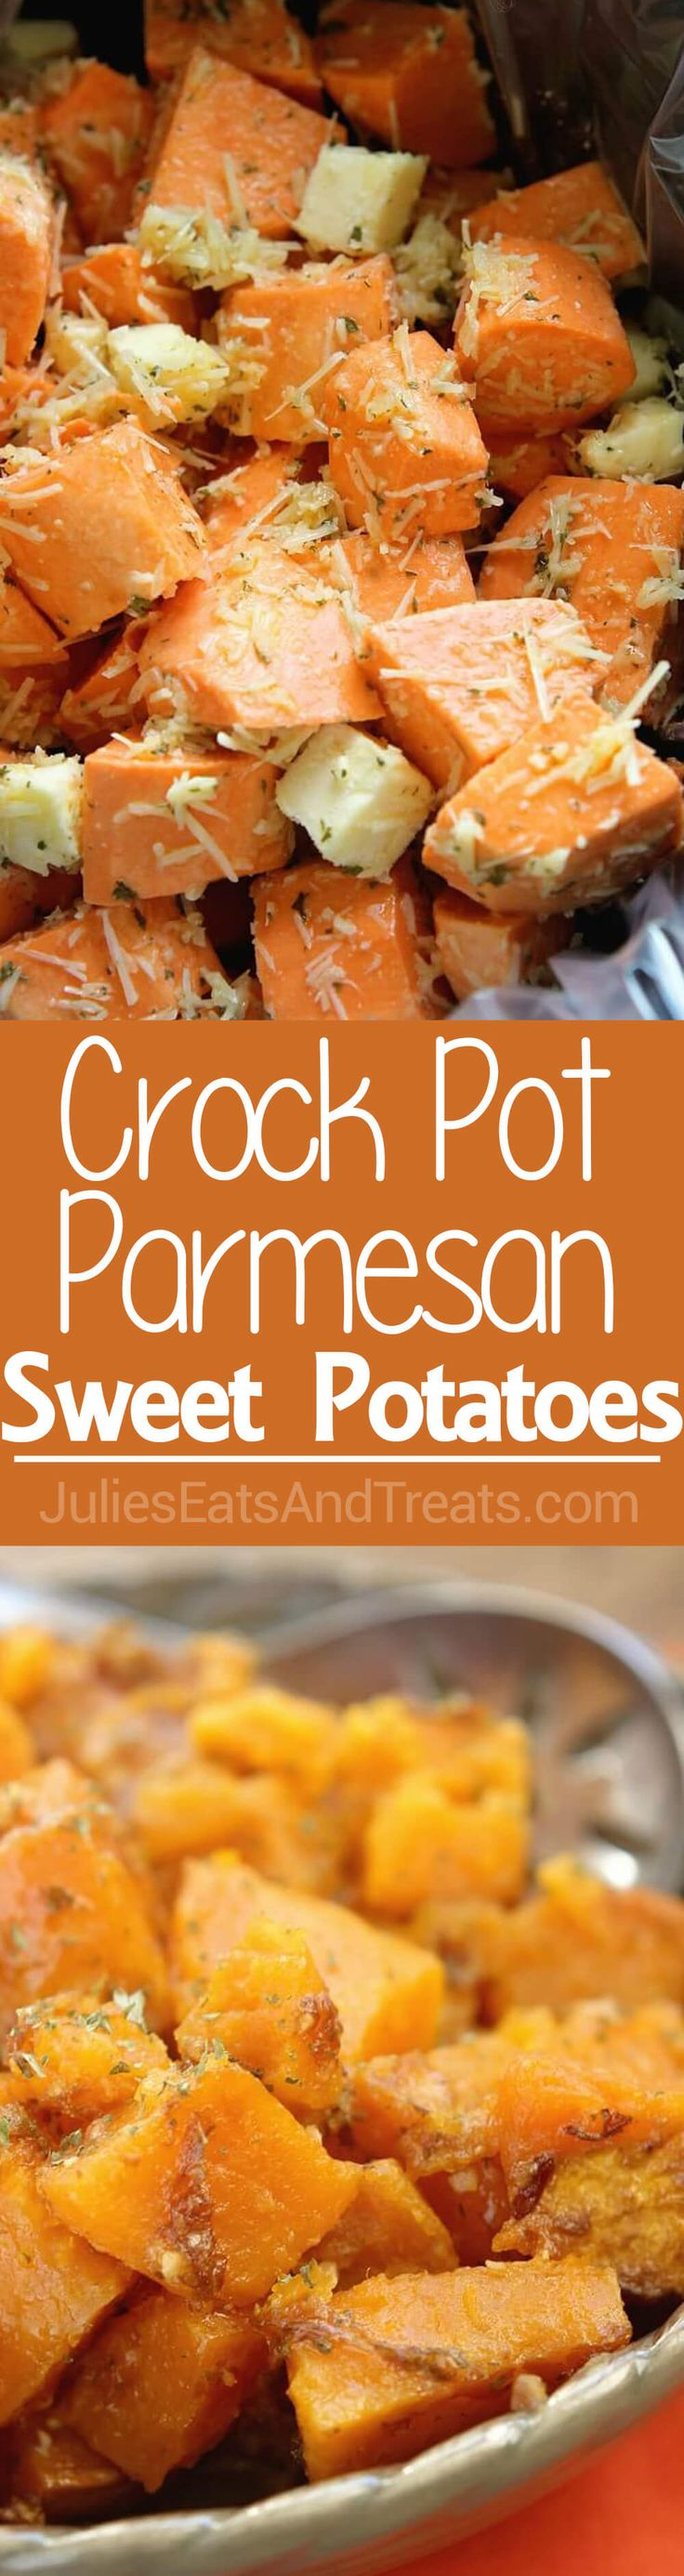 Parmesan Crock Pot Sweet Potatoes ~ Easy Weeknight Side Dish or Holiday Side Dish in Your Slow Cooker! Full of Garlic and Parmesan Flavor! via @julieseats